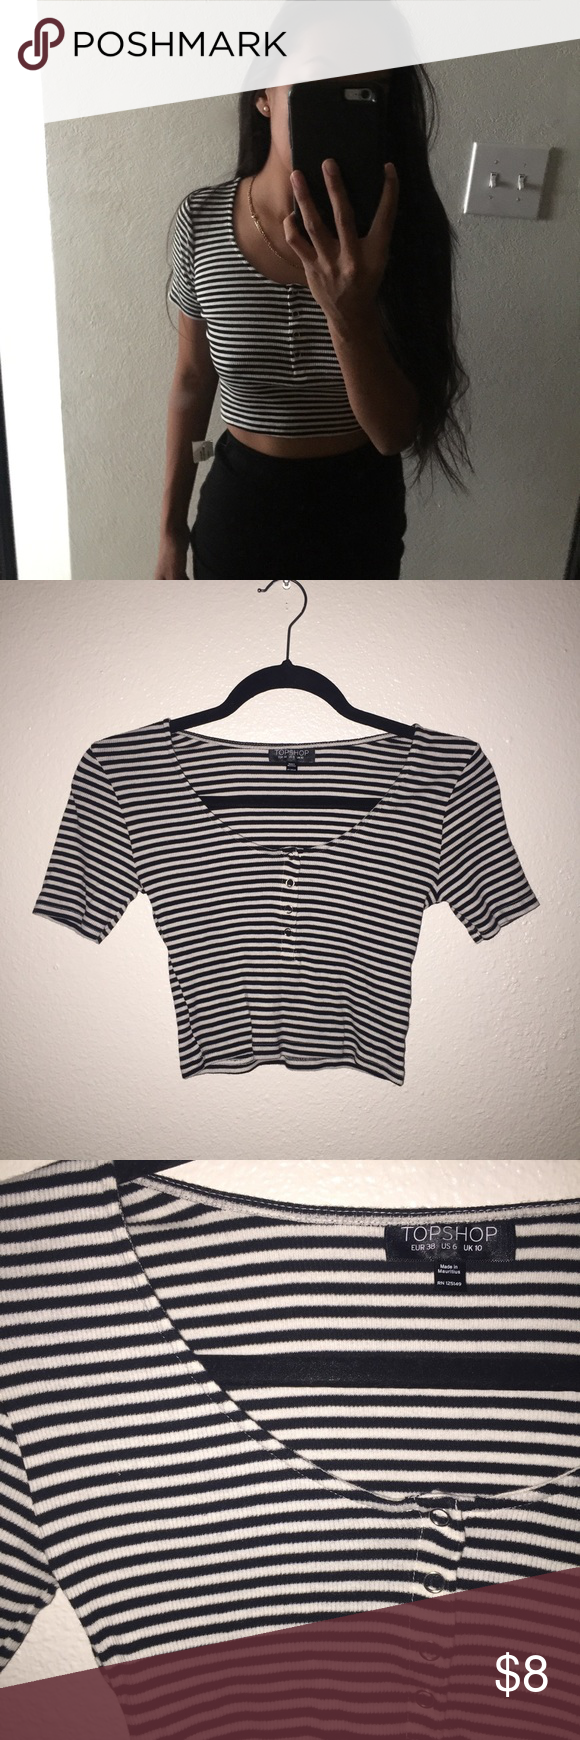 Top shop crop top Top shop crop top. Has black and white stripes. Will fit a small/medium the best. Topshop Tops Crop Tops